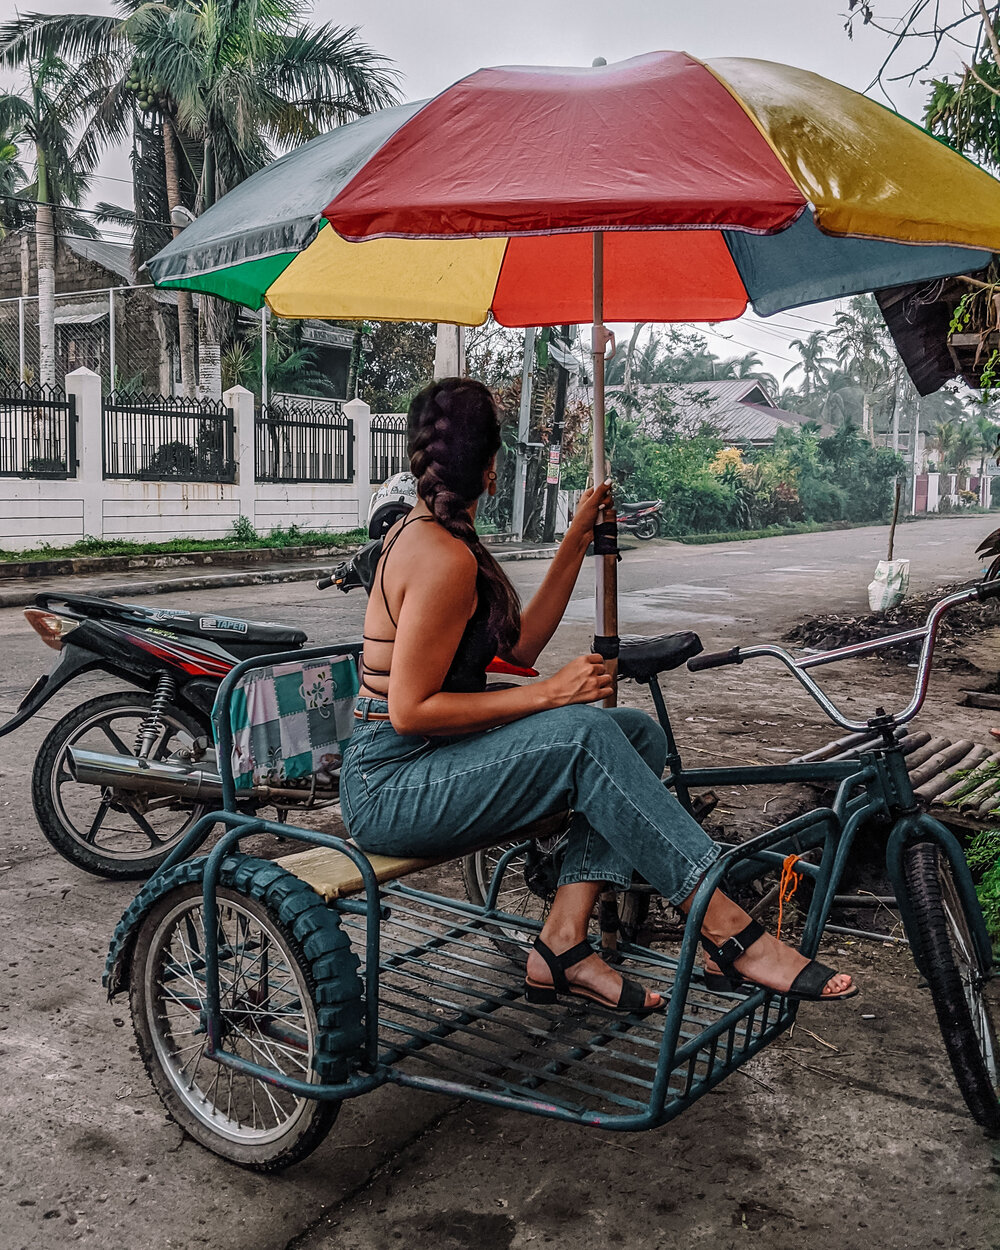 Rachel Off duty: Tricycle Rides in the Philippines